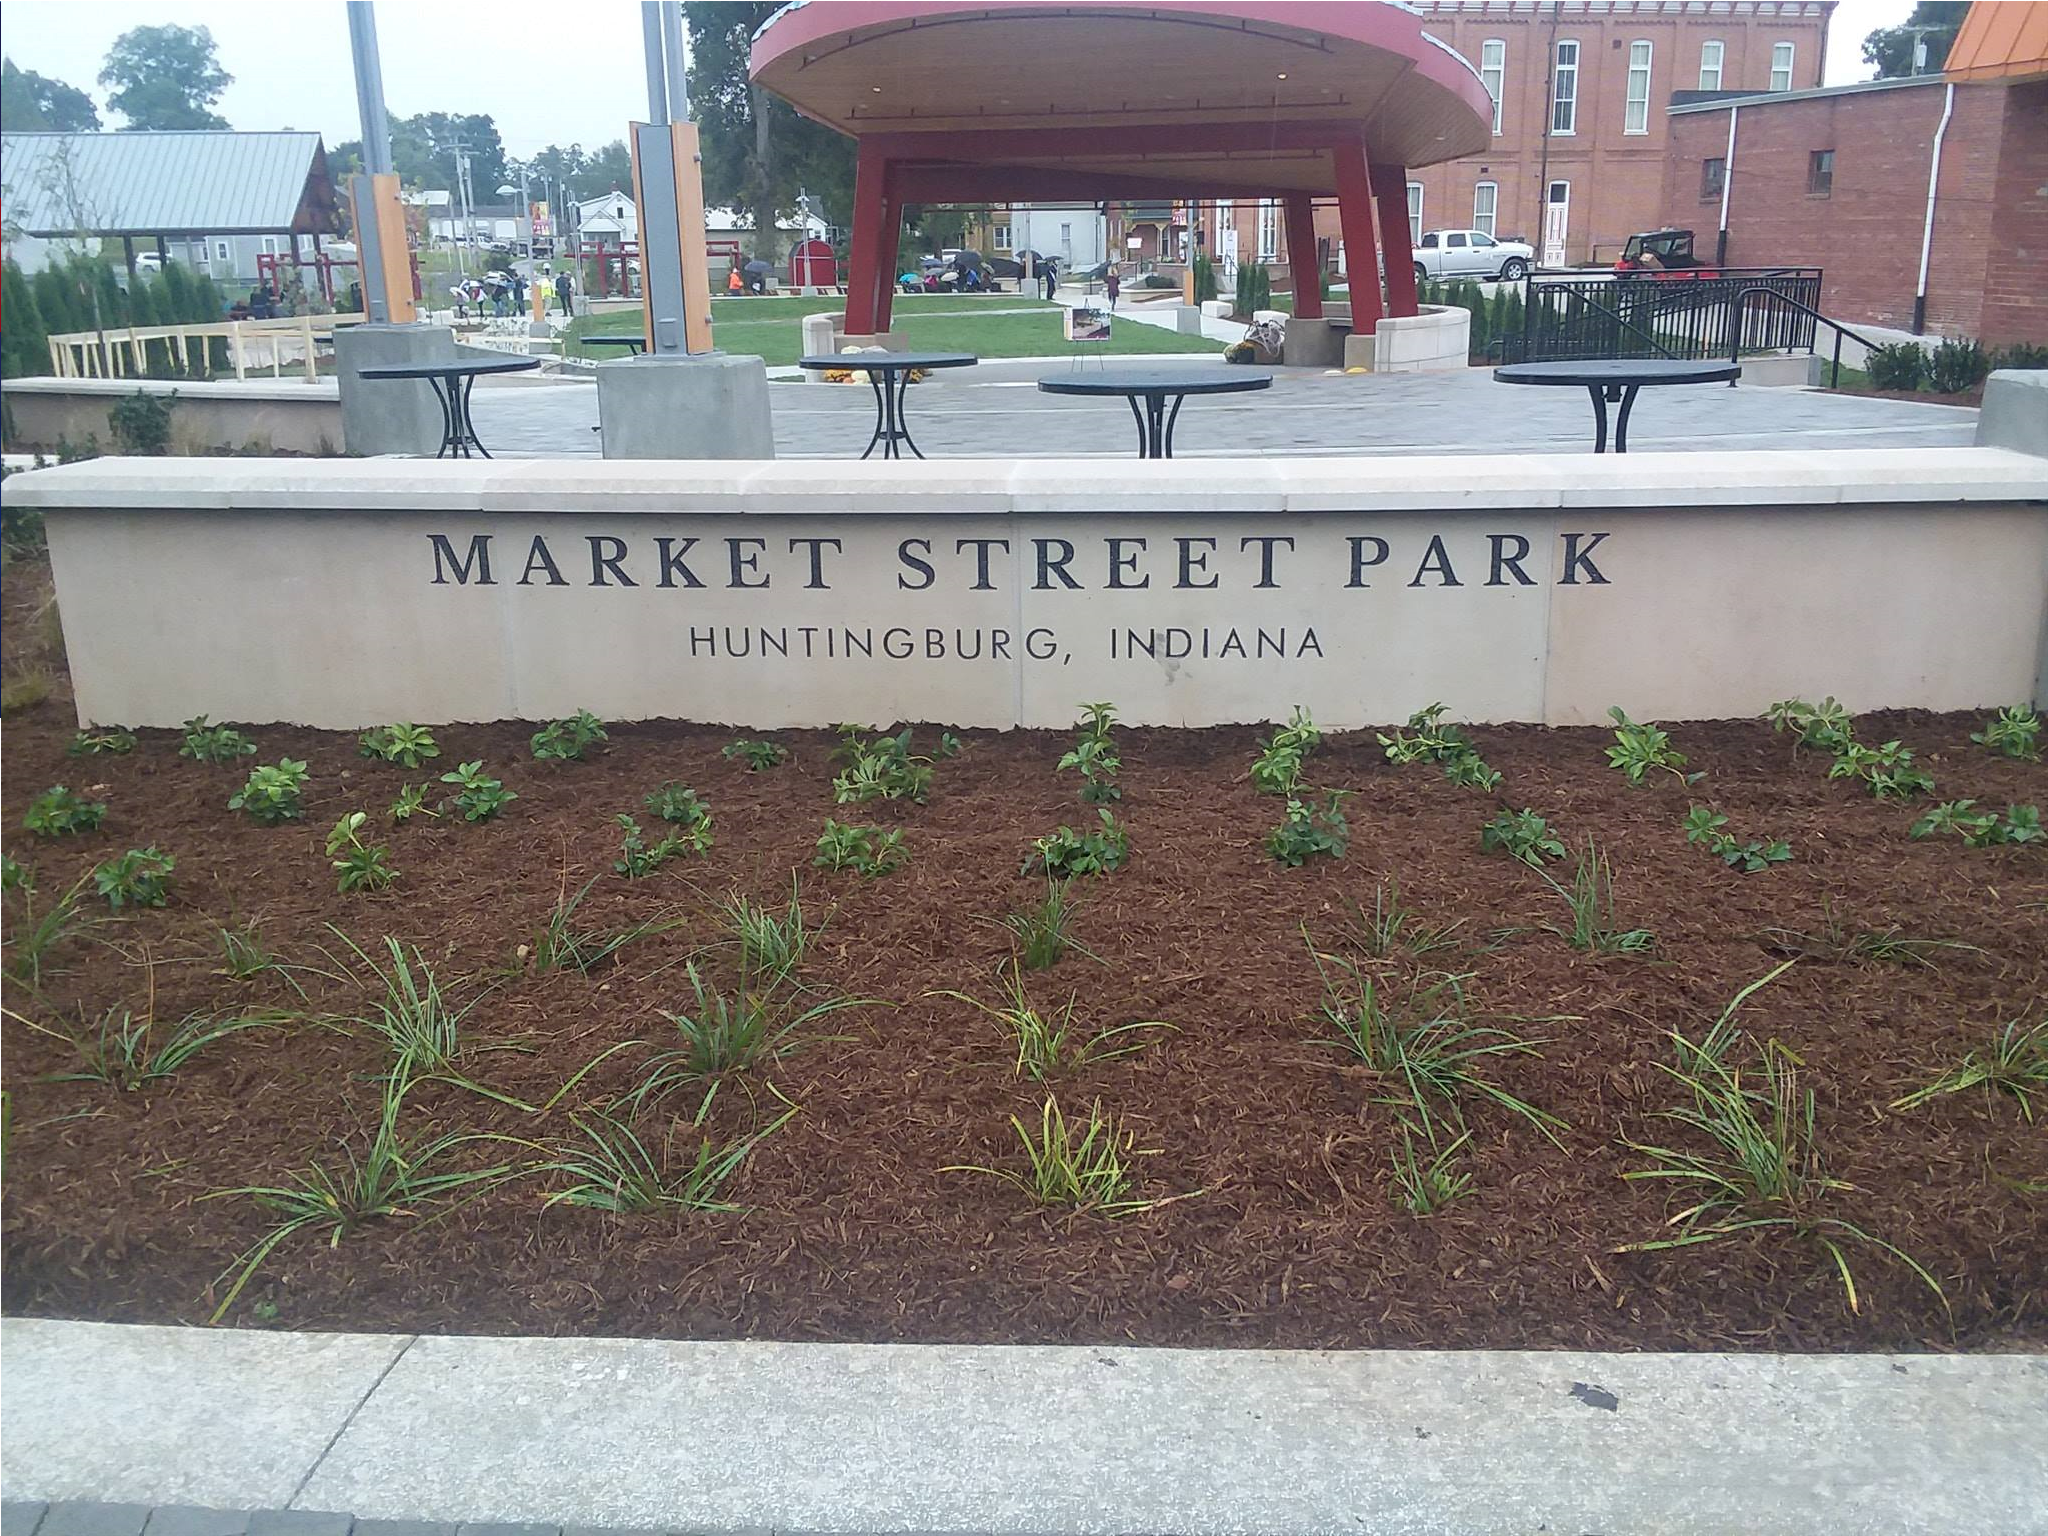 Market Street Park Earns Regional Award From Regional Opportunity Initiatives